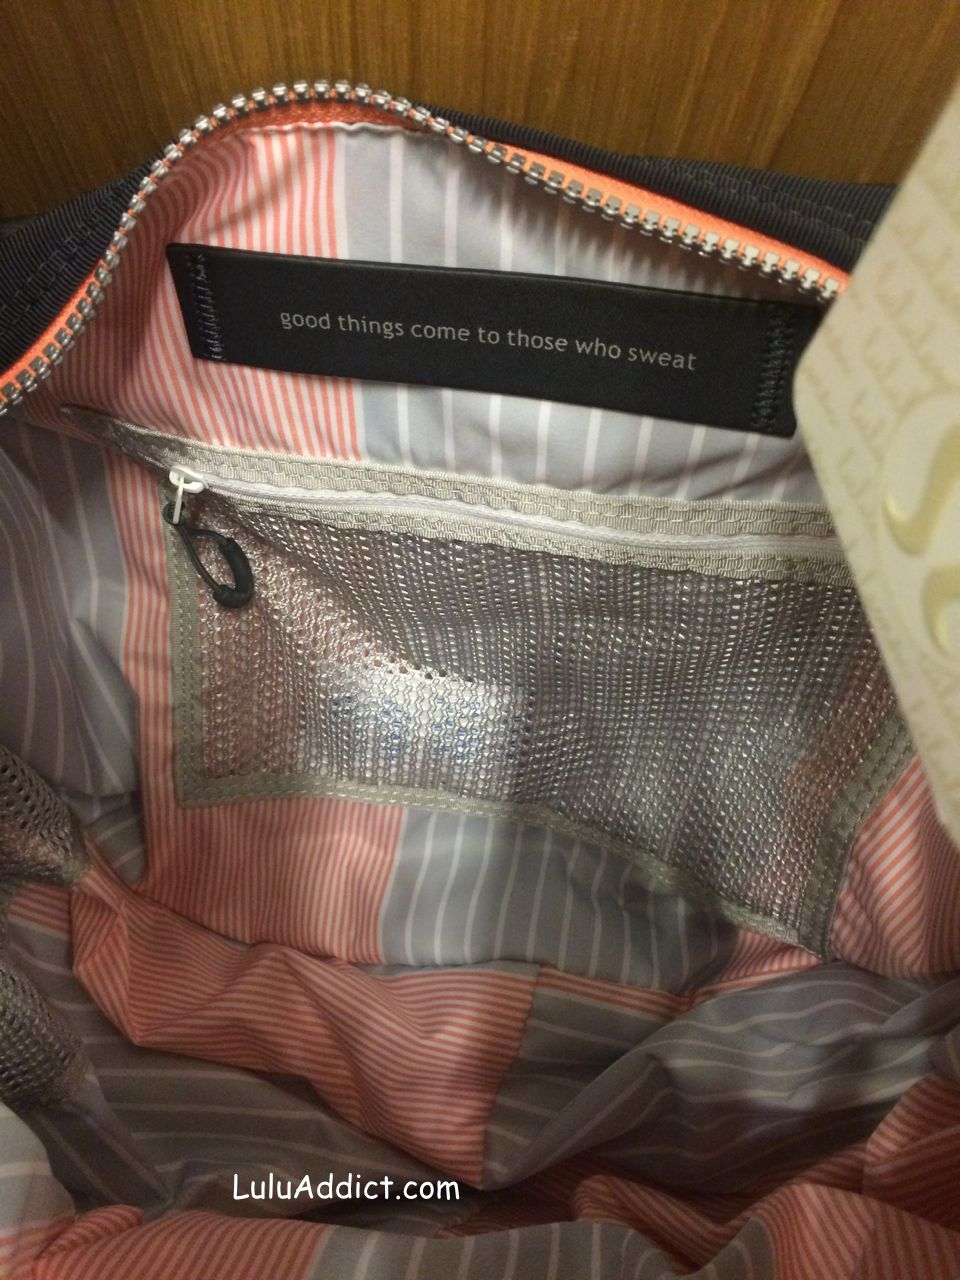 lululemon resolution hobo